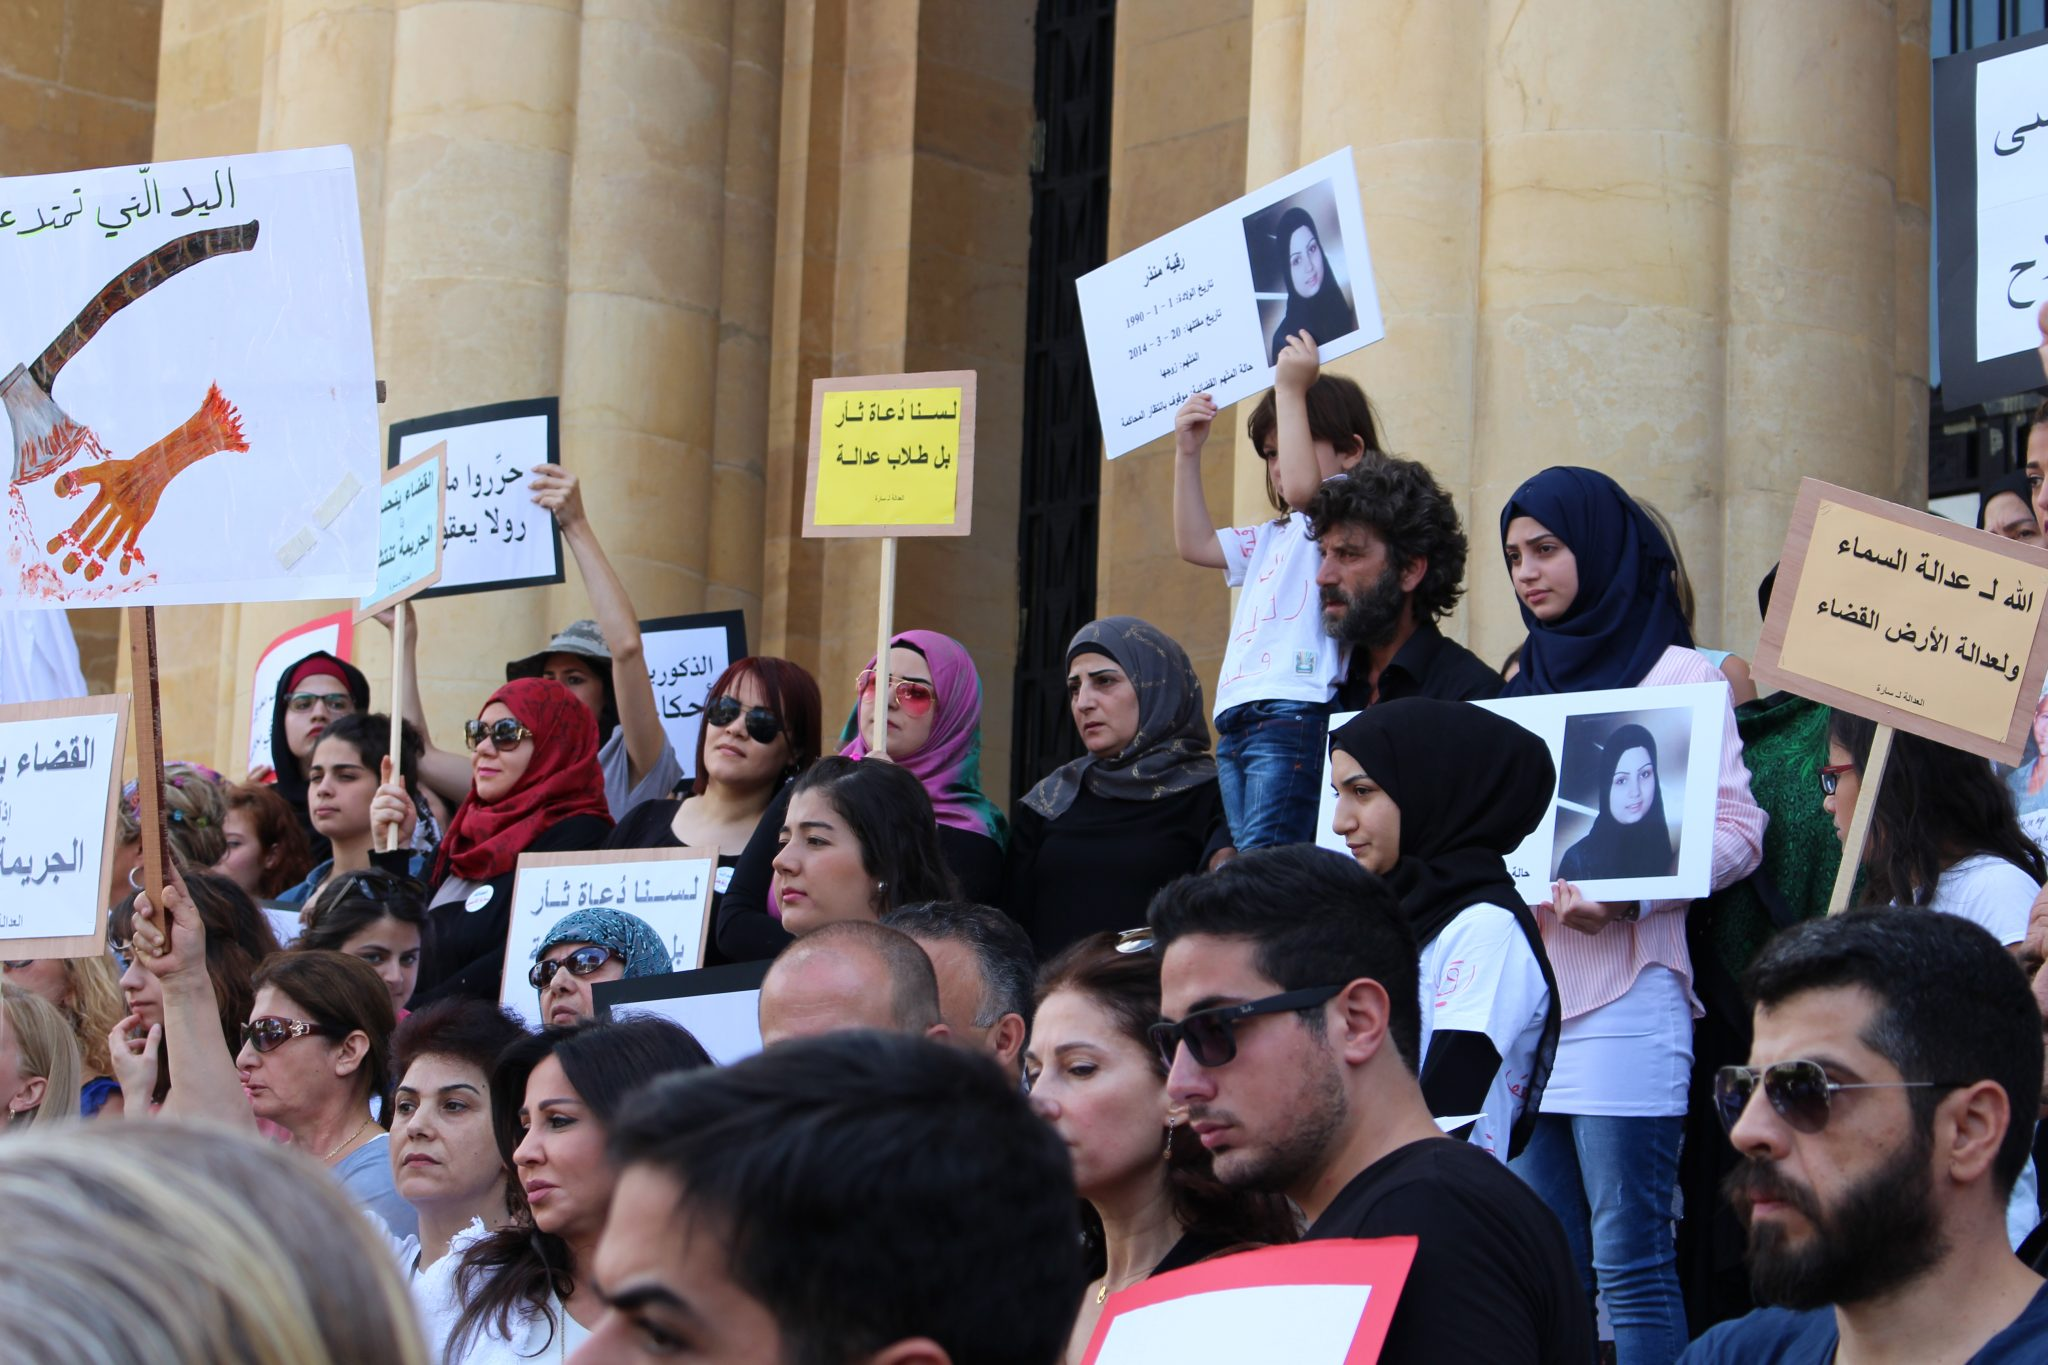 Our partner organisation Kafa organised a protest to call attention to several domestic violence cases (in which wives were murdered by their husbands) stuck in court. Here, protesters gather outside Beirut's National Museum. Photo: Alexander Karlsdotter Stenström